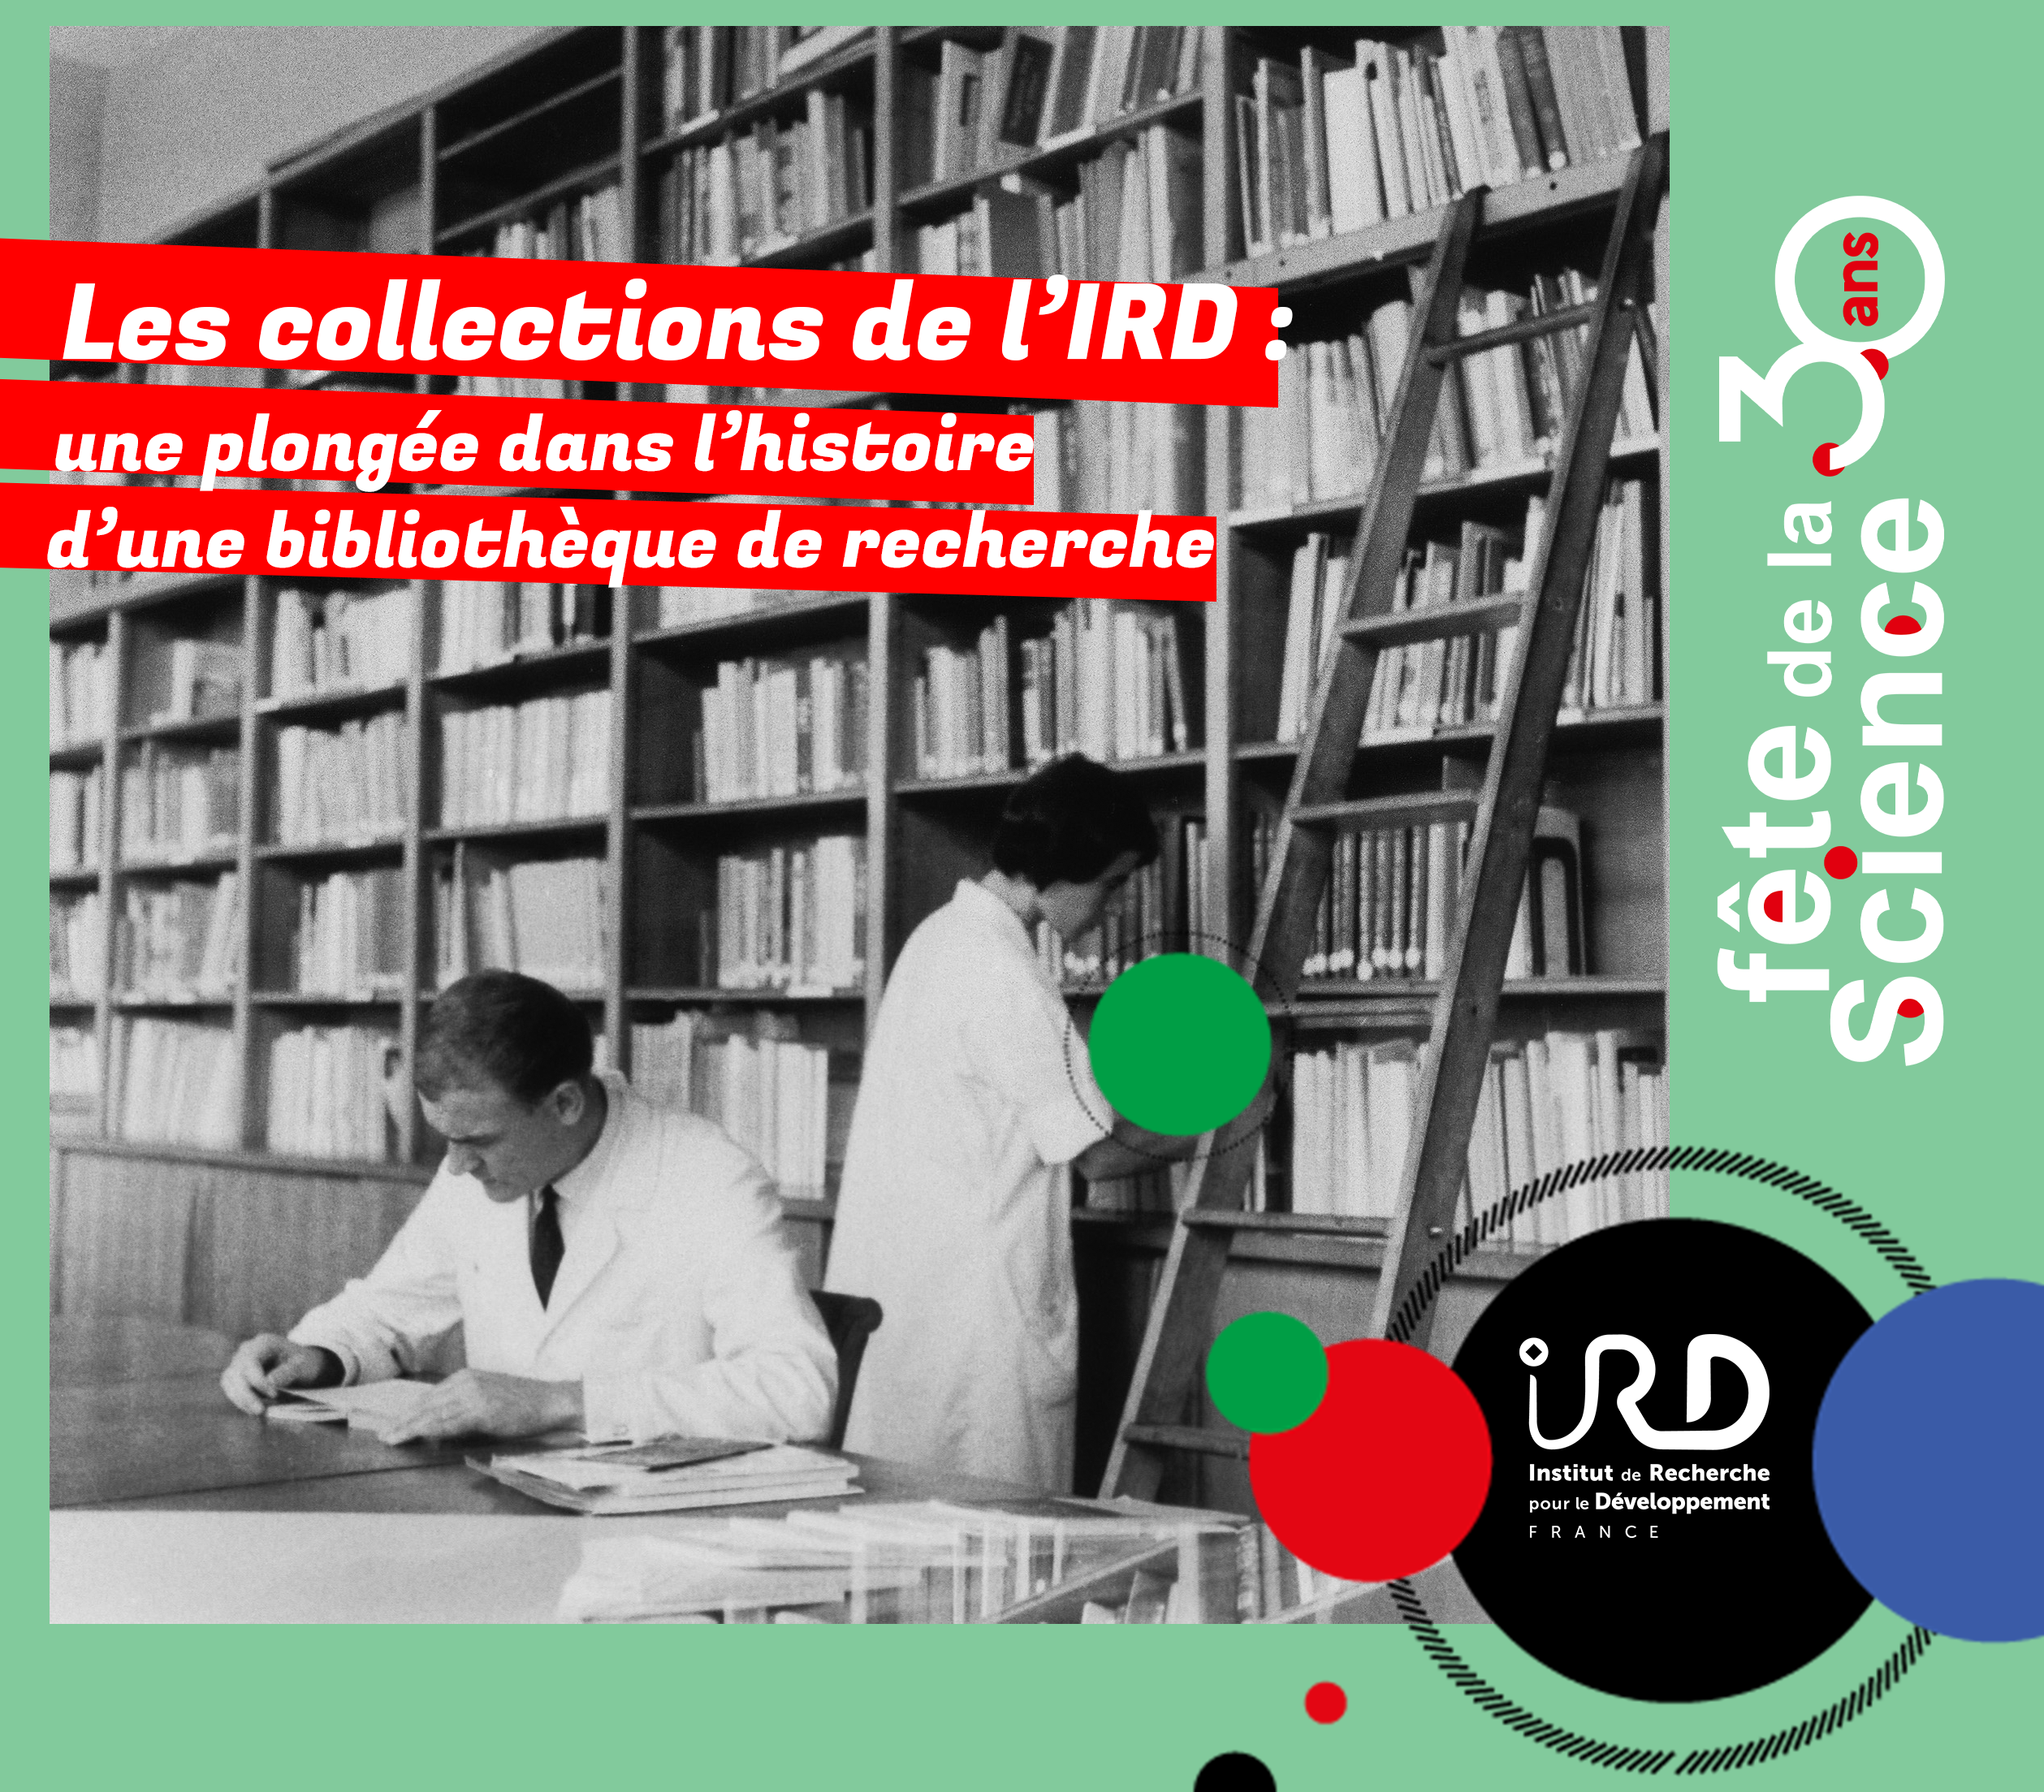 An immersion within the historical past of an IRD analysis library – Bondy Analysis Institute for Improvement Friday, October 8, 2021